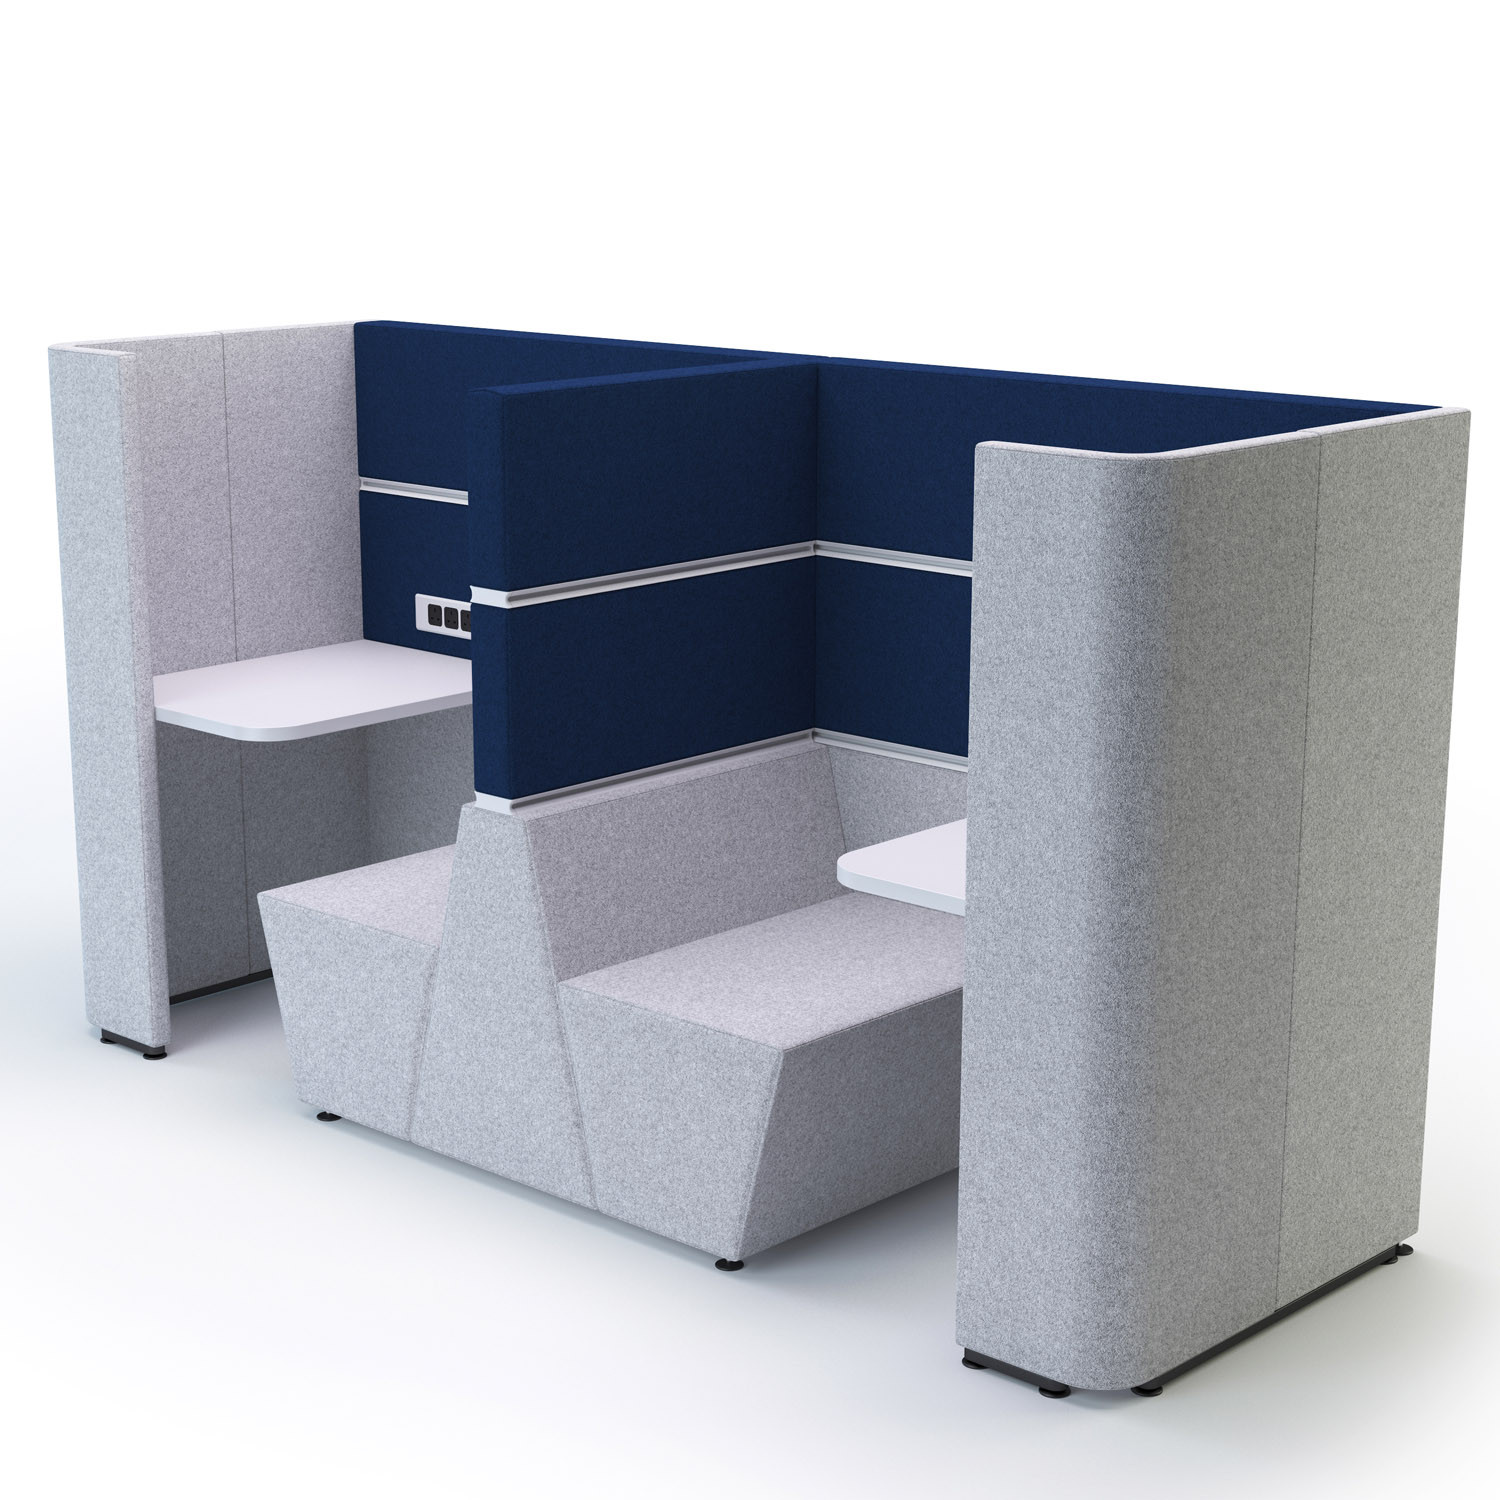 Fold Away Furniture Cubbi Privacy Booths Modular Acoustic Privacy Pods